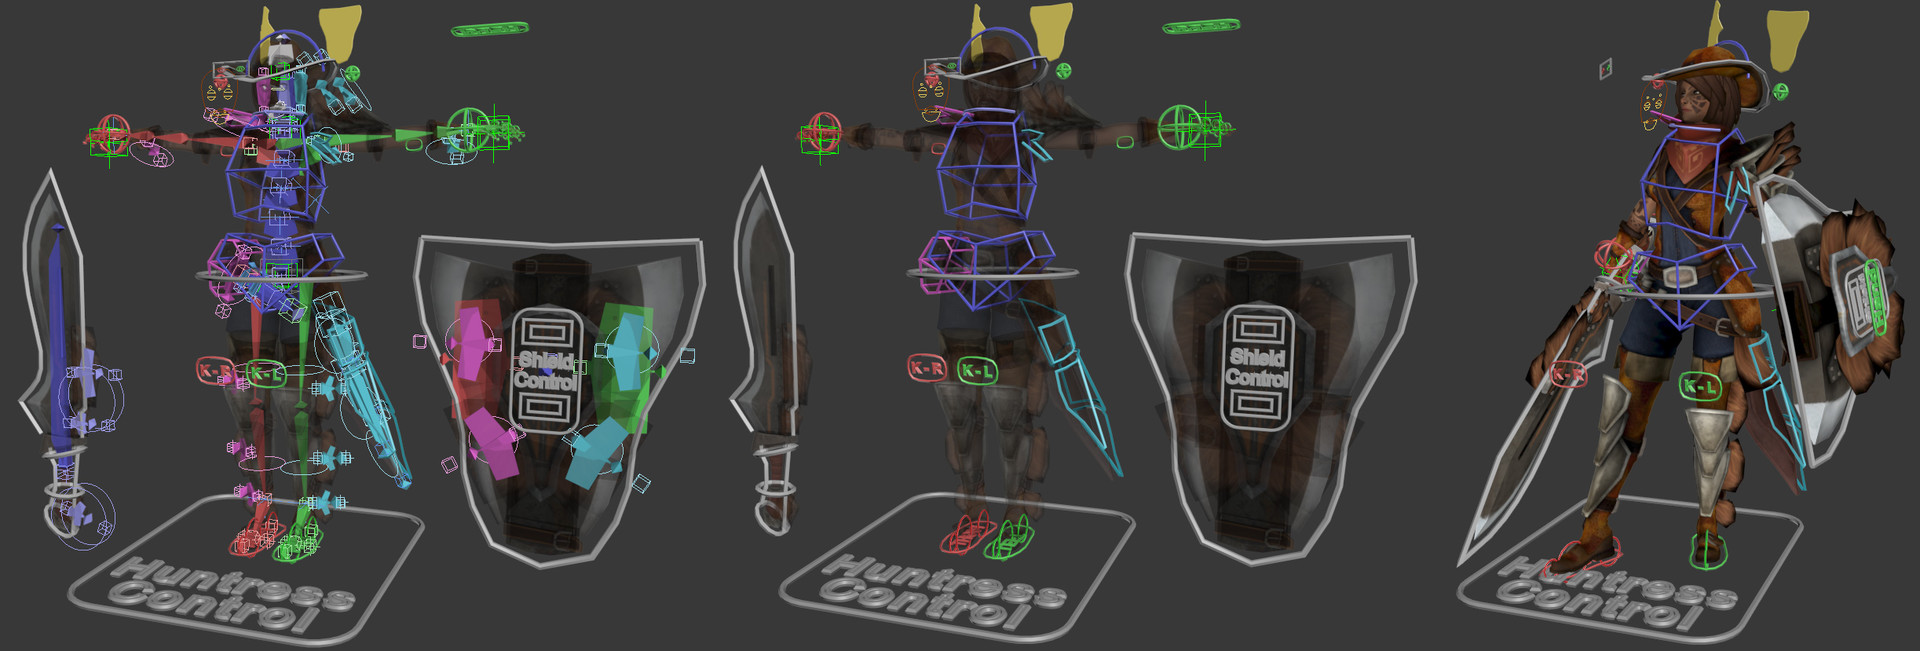 Brandon smith rig preview